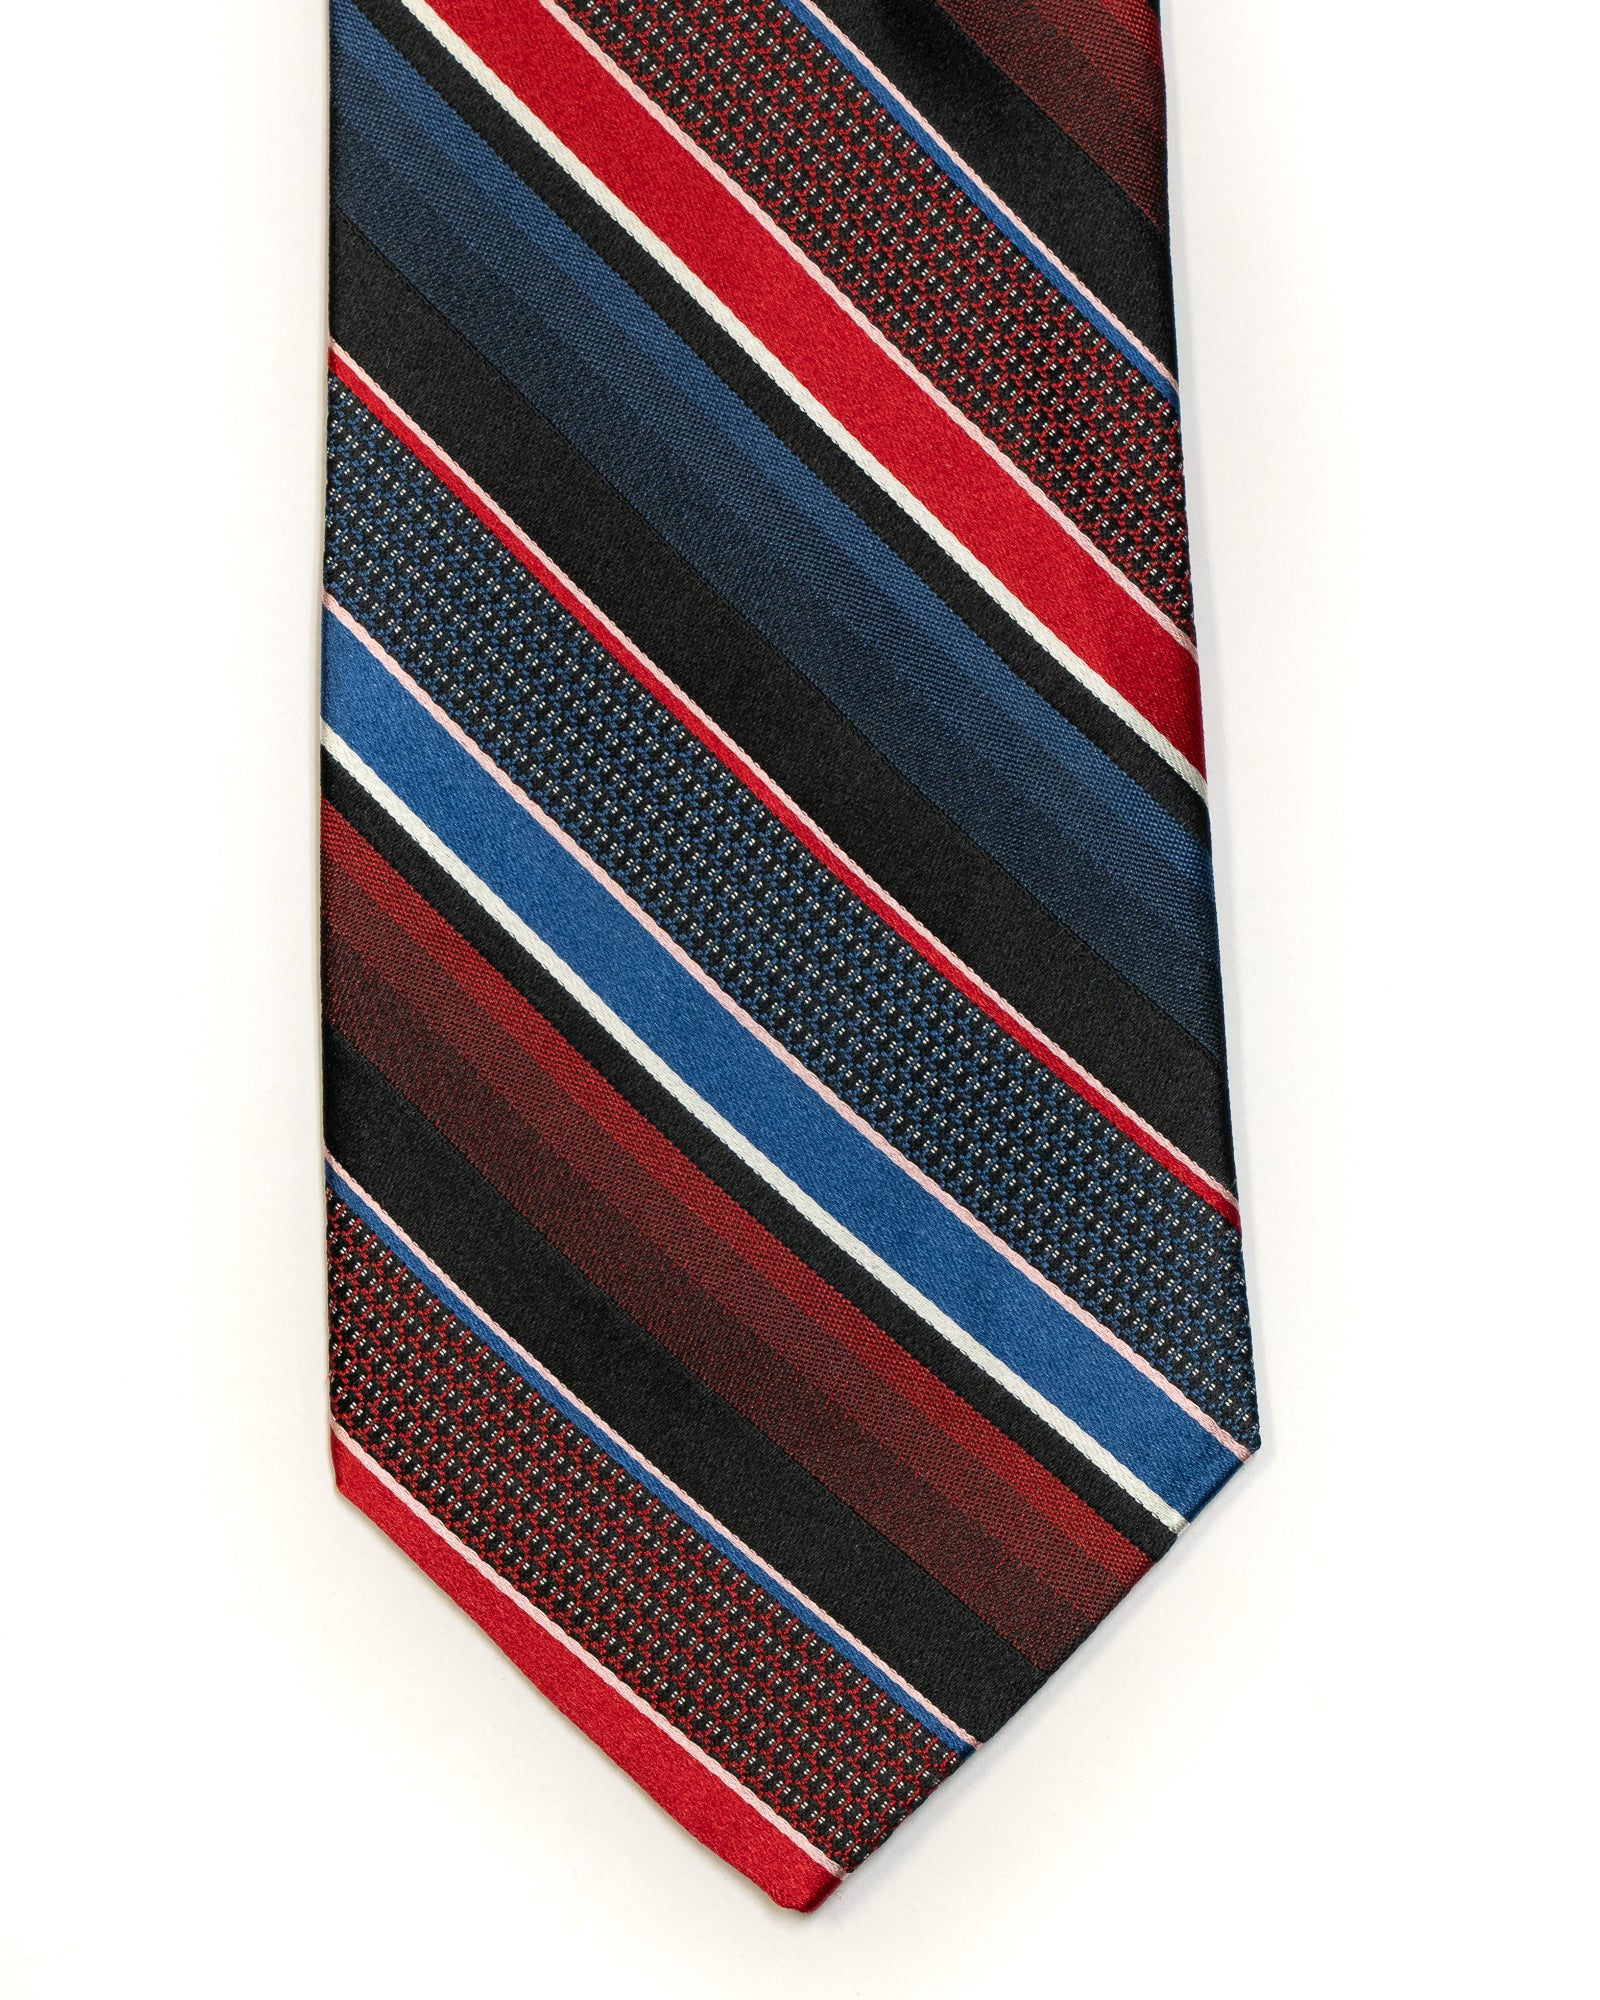 Silk Tie in Navy With Red Stripe - Rainwater's